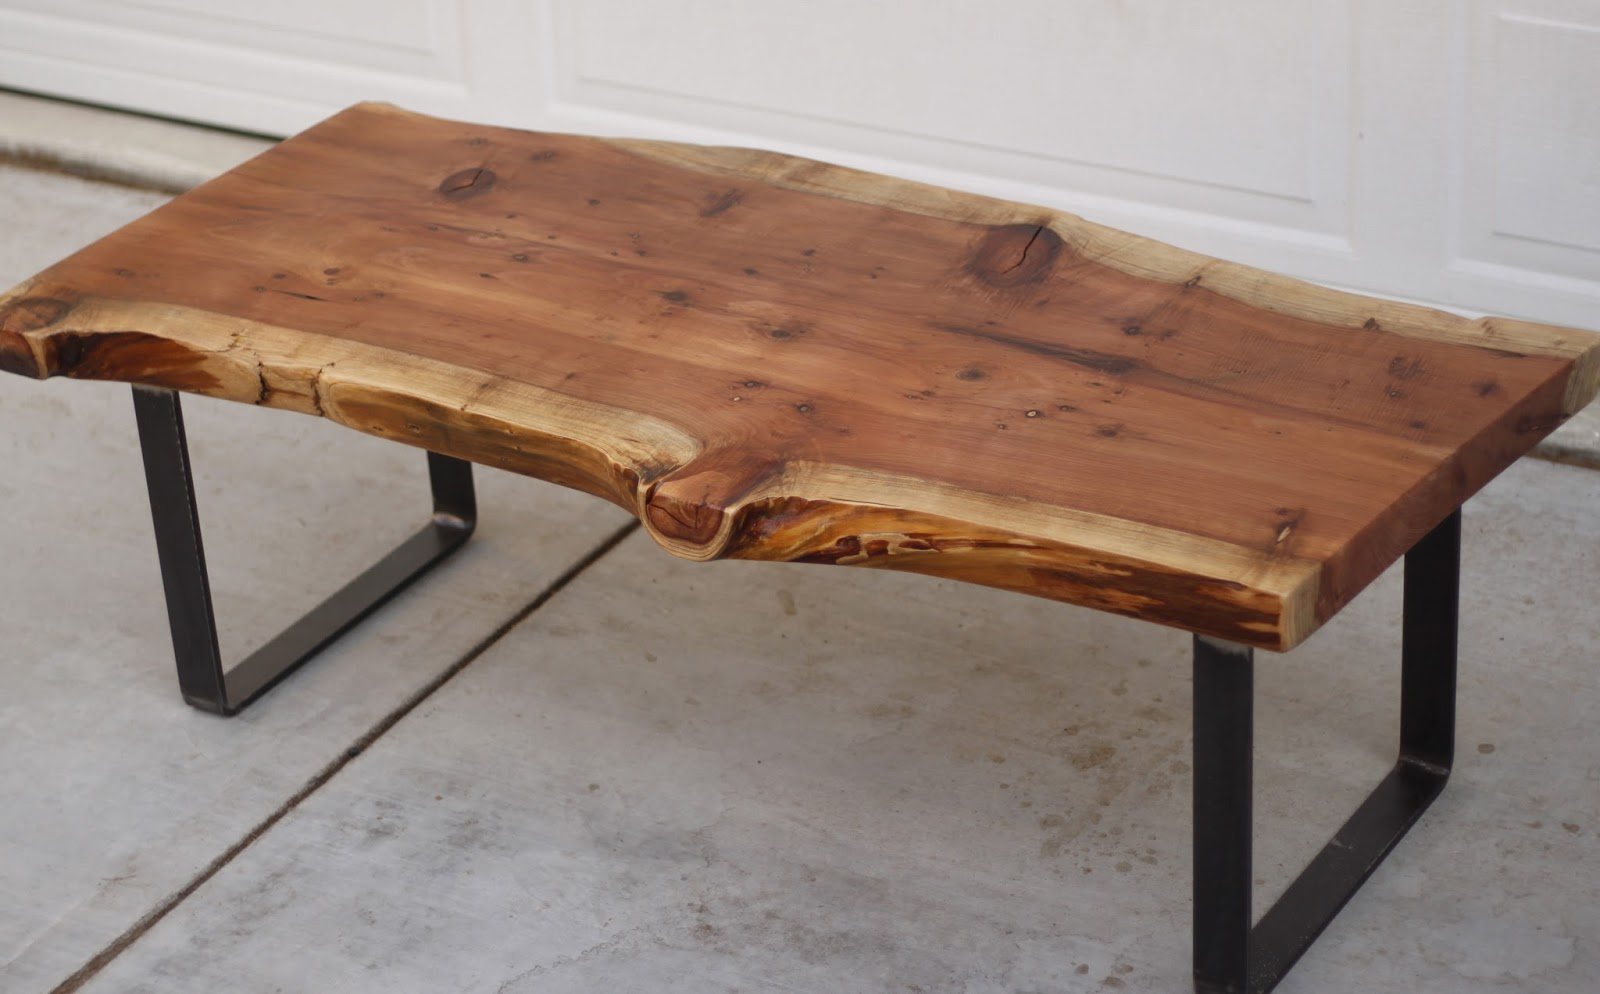 Reclaimed Wood Table ~ Wood slab furniture at the galleria